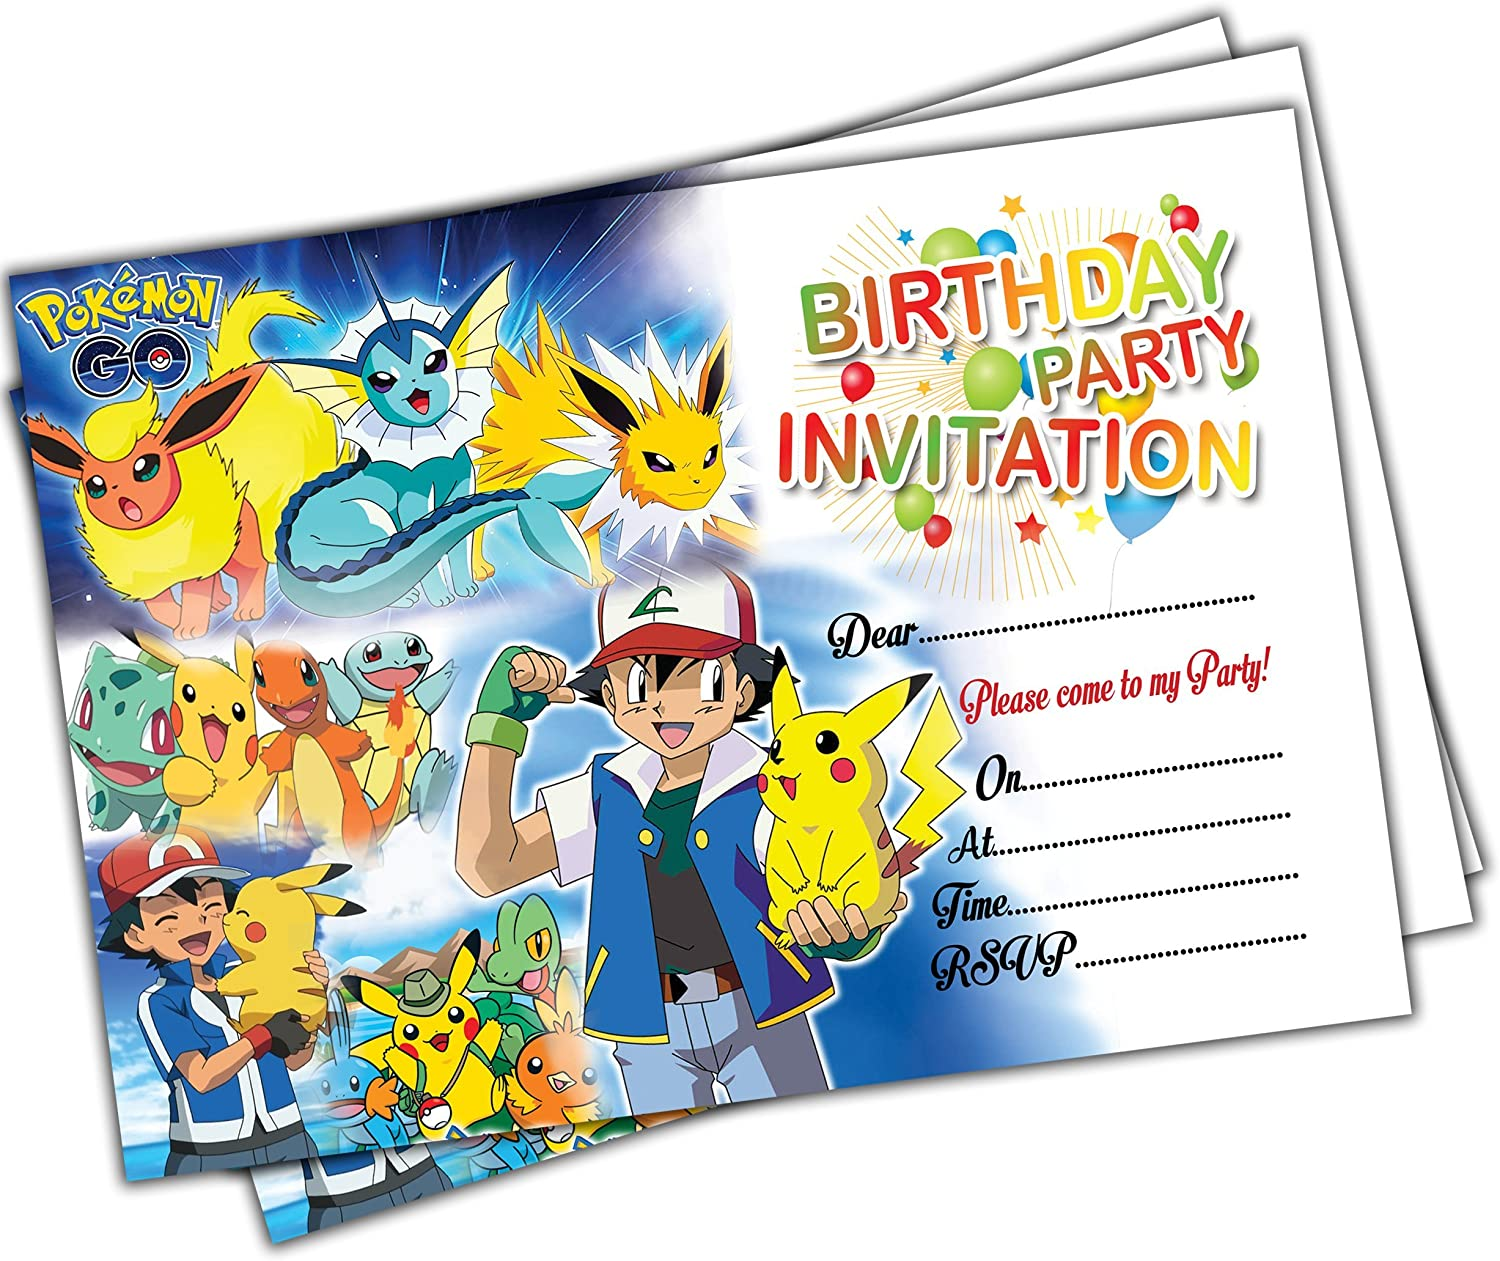 Pokemon Go Kids Birthday Party Invitations Pack Of 20 A6 Cards Invites Girls Boys Childrens